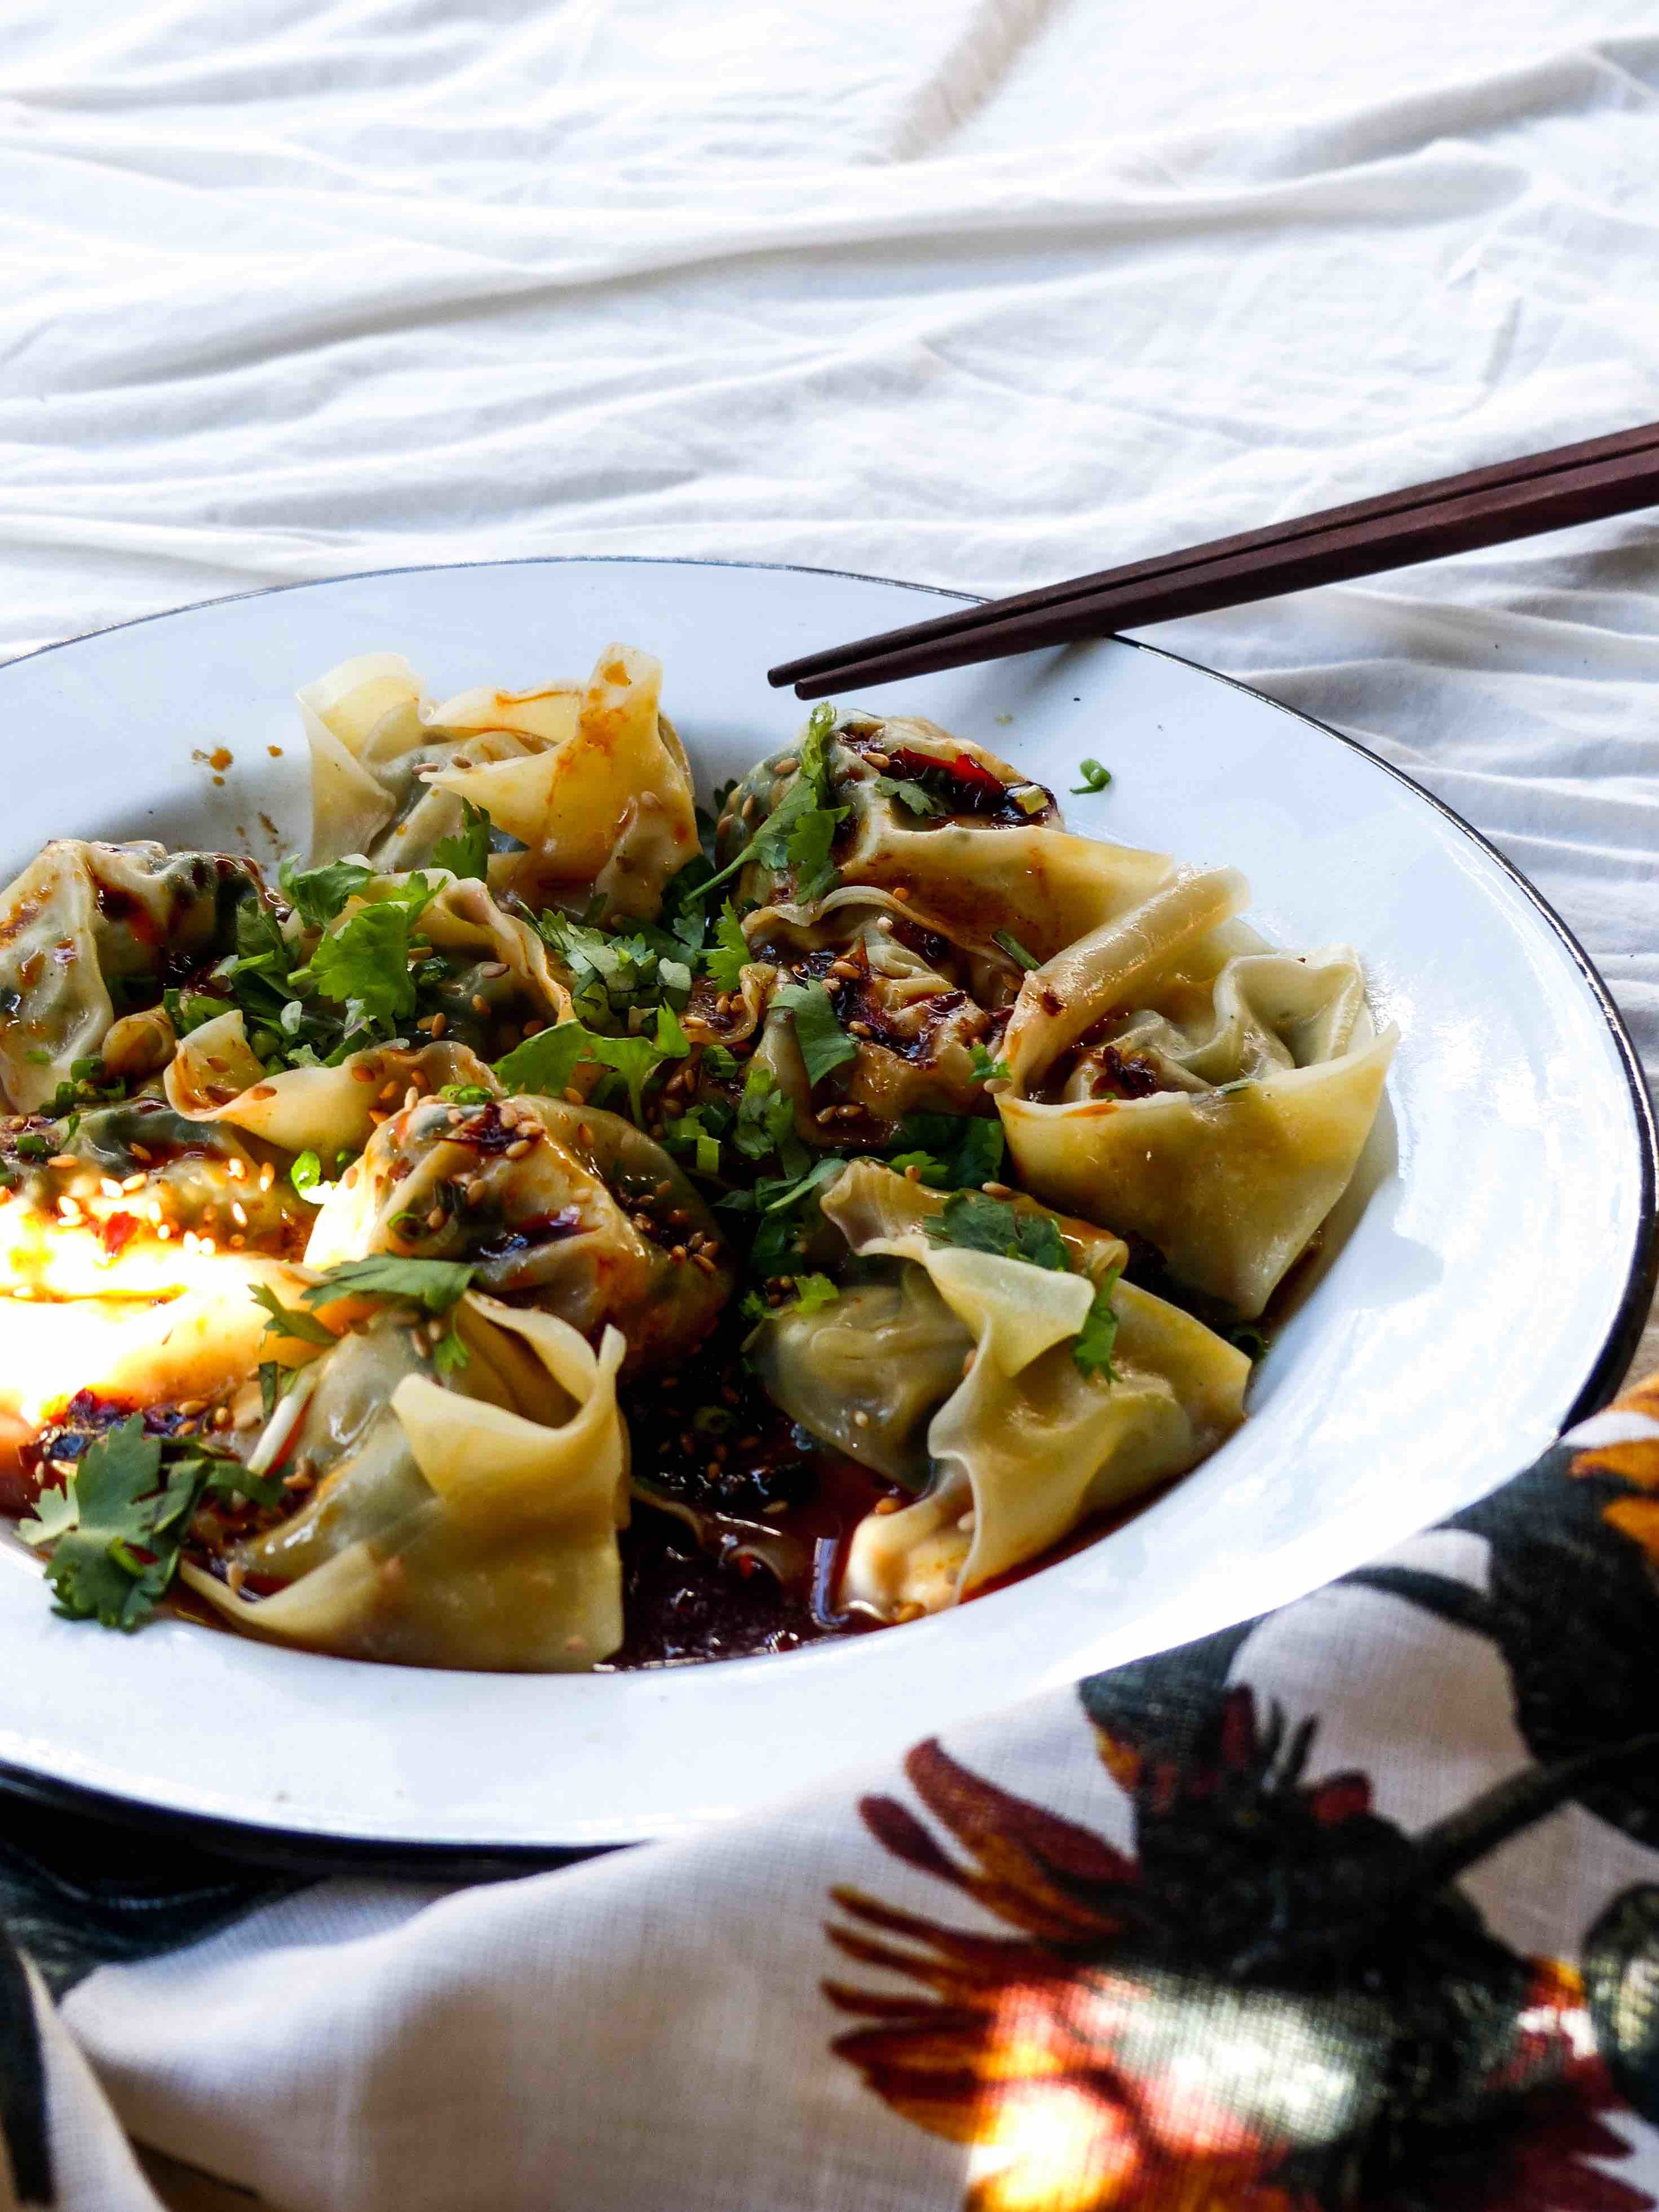 Sichuan-style wontons